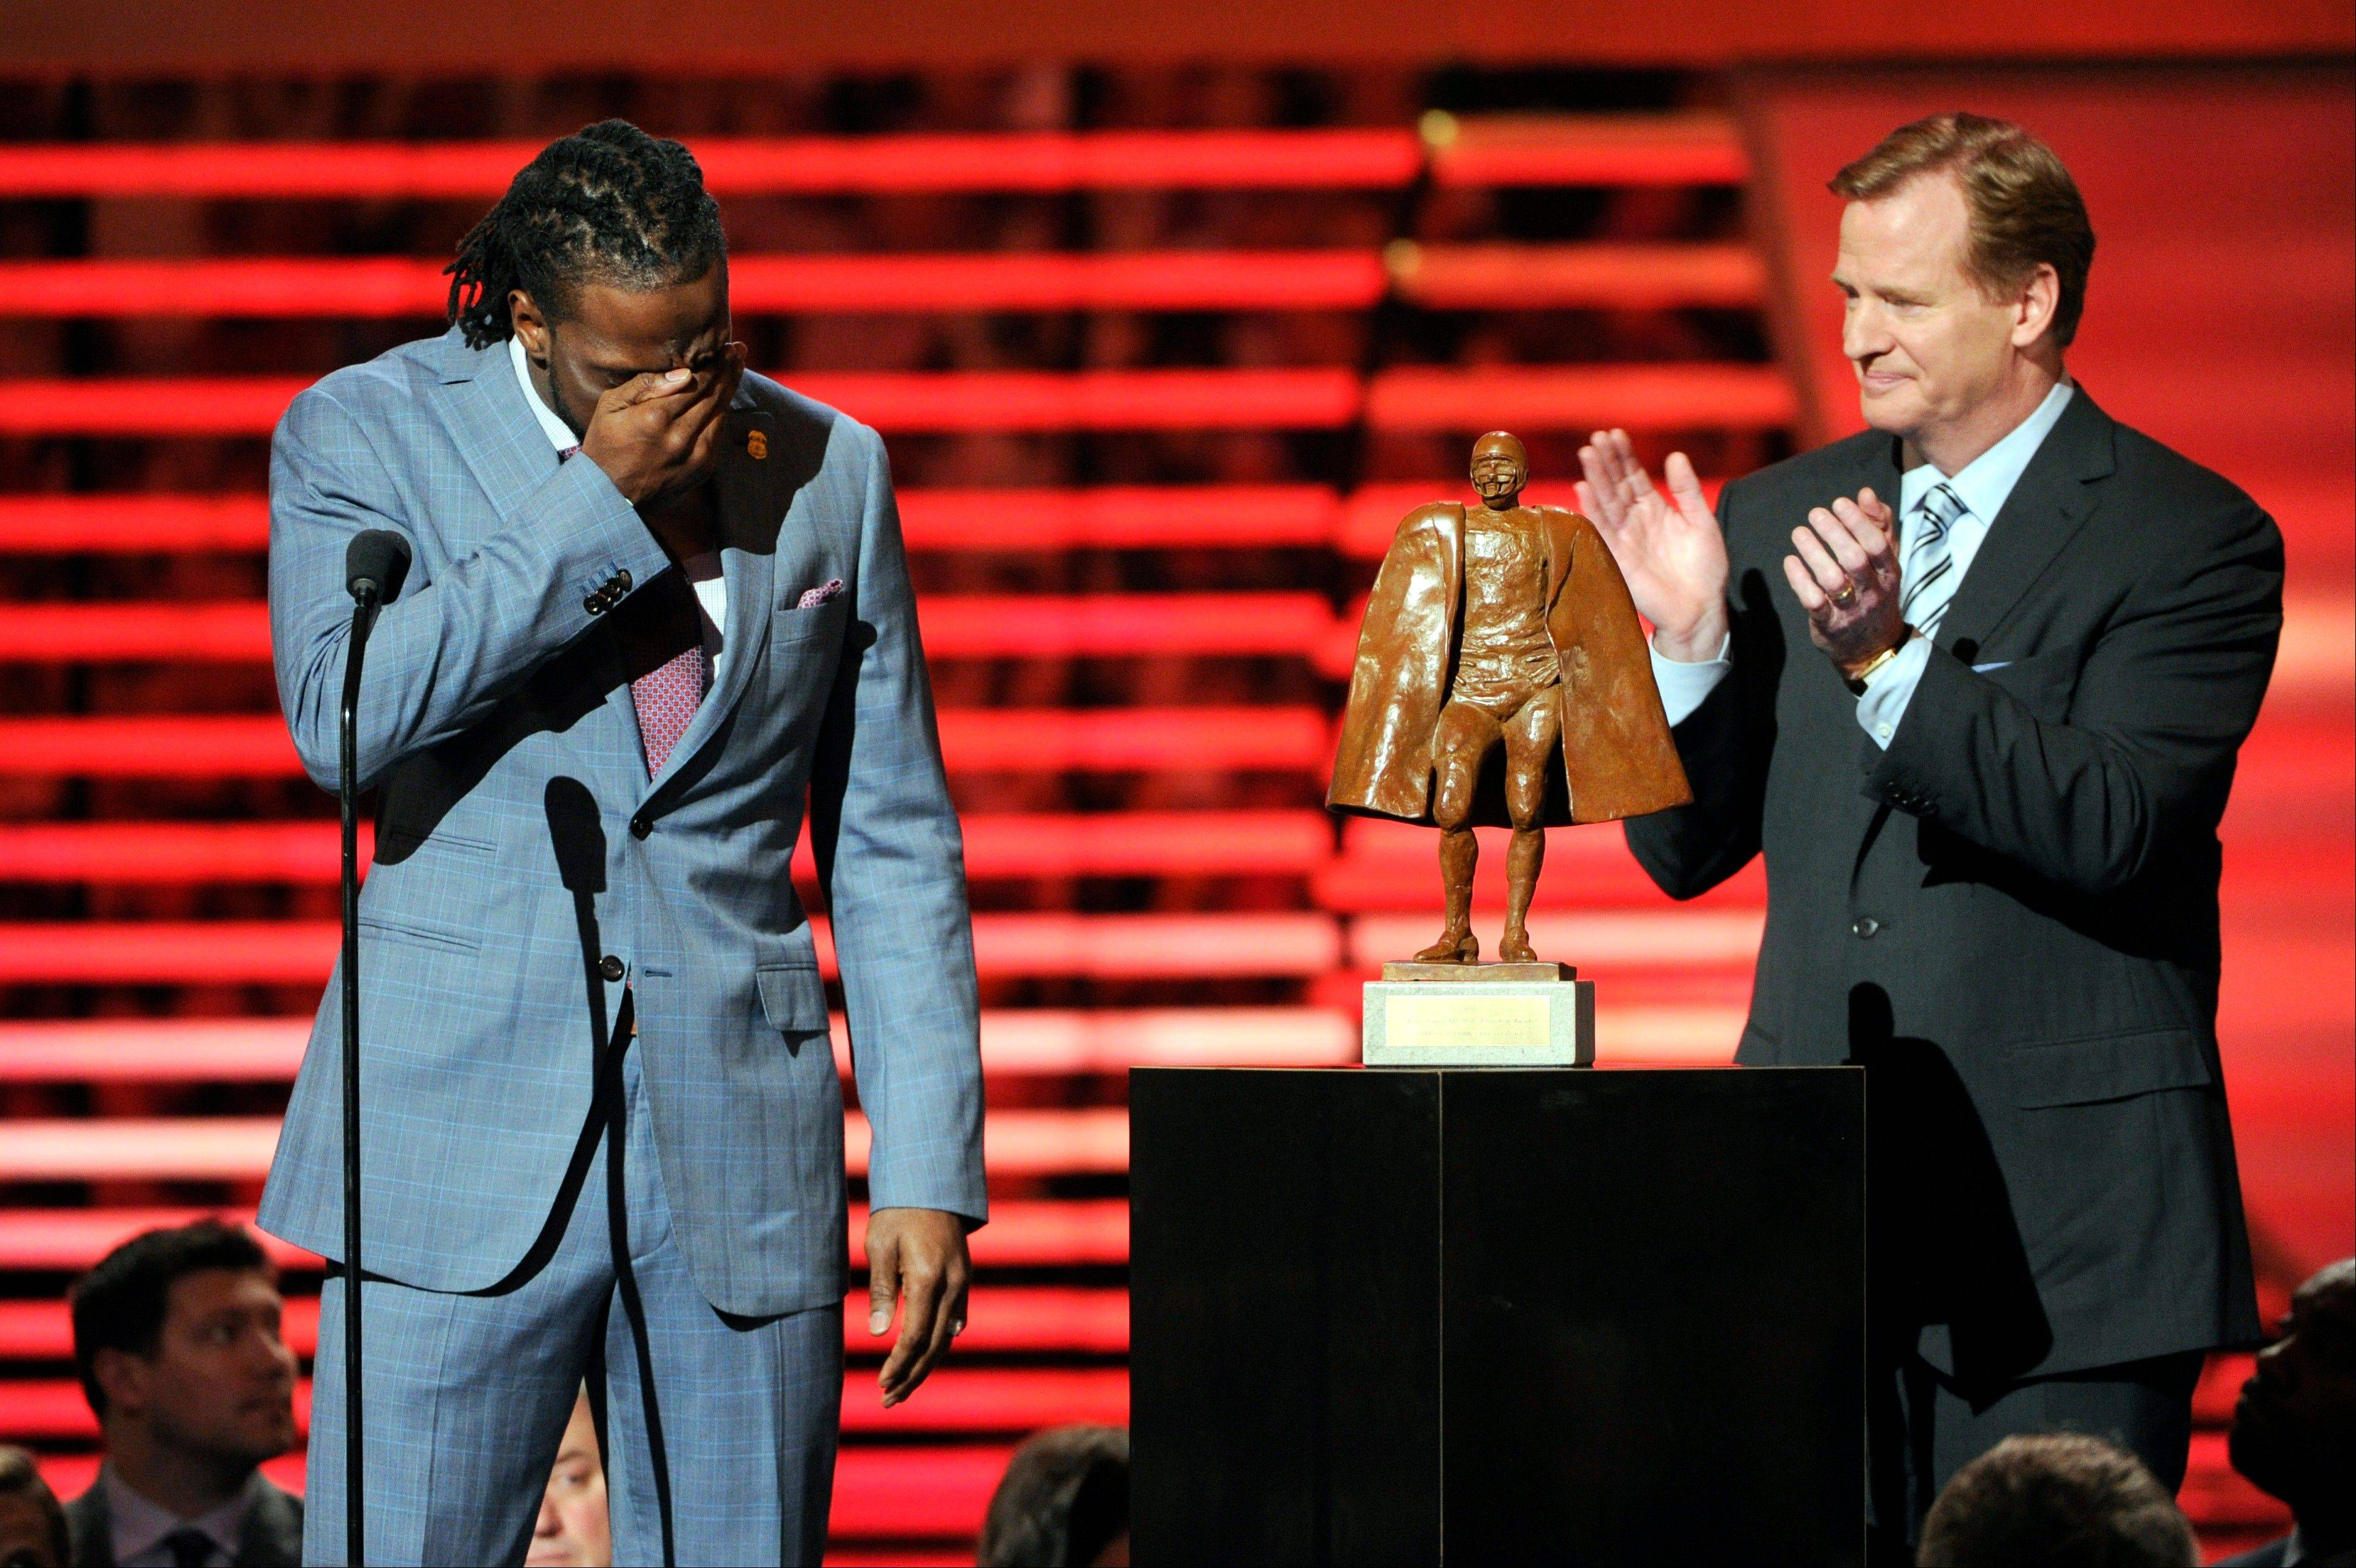 Charles �Peanut� Tillman of the Chicago Bears, left, accepts the award for Walter Payton NFL Man of the Year from NFL Commissioner Roger Goodell at the annual NFL Honors at Radio City Music Hall.